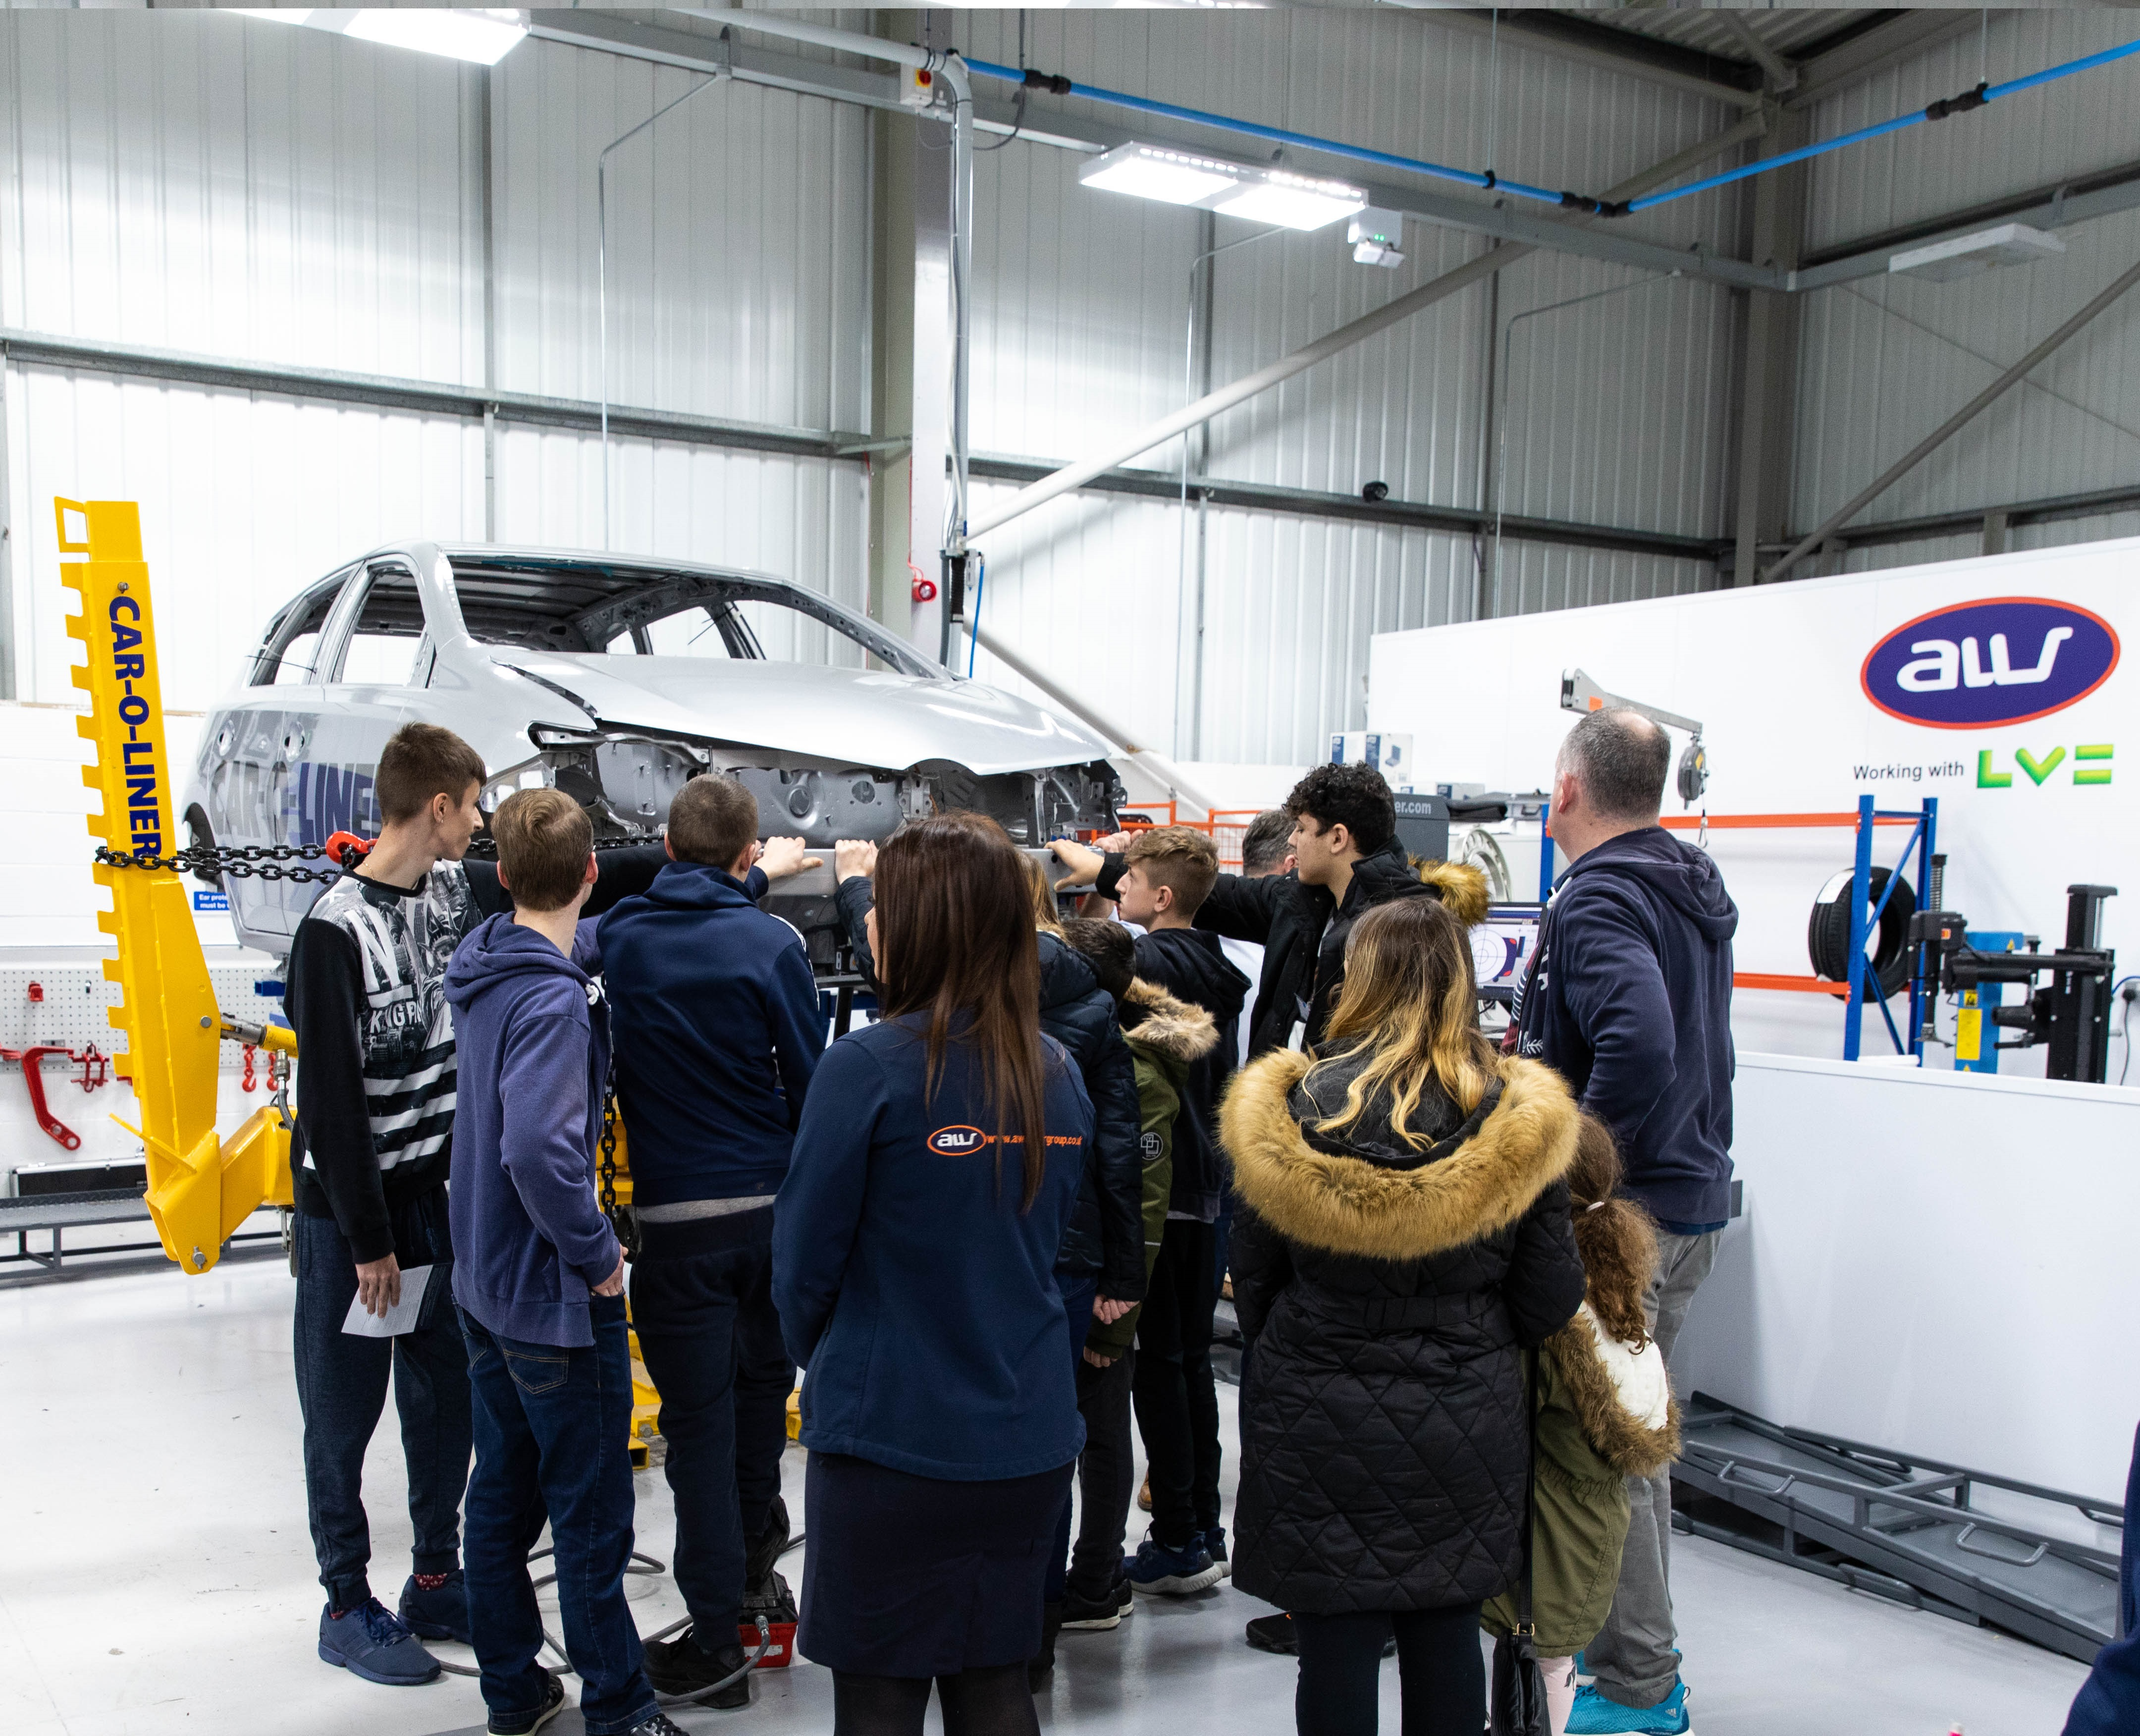 Dynamic video captures AW's buzzing Apprentice Showcase